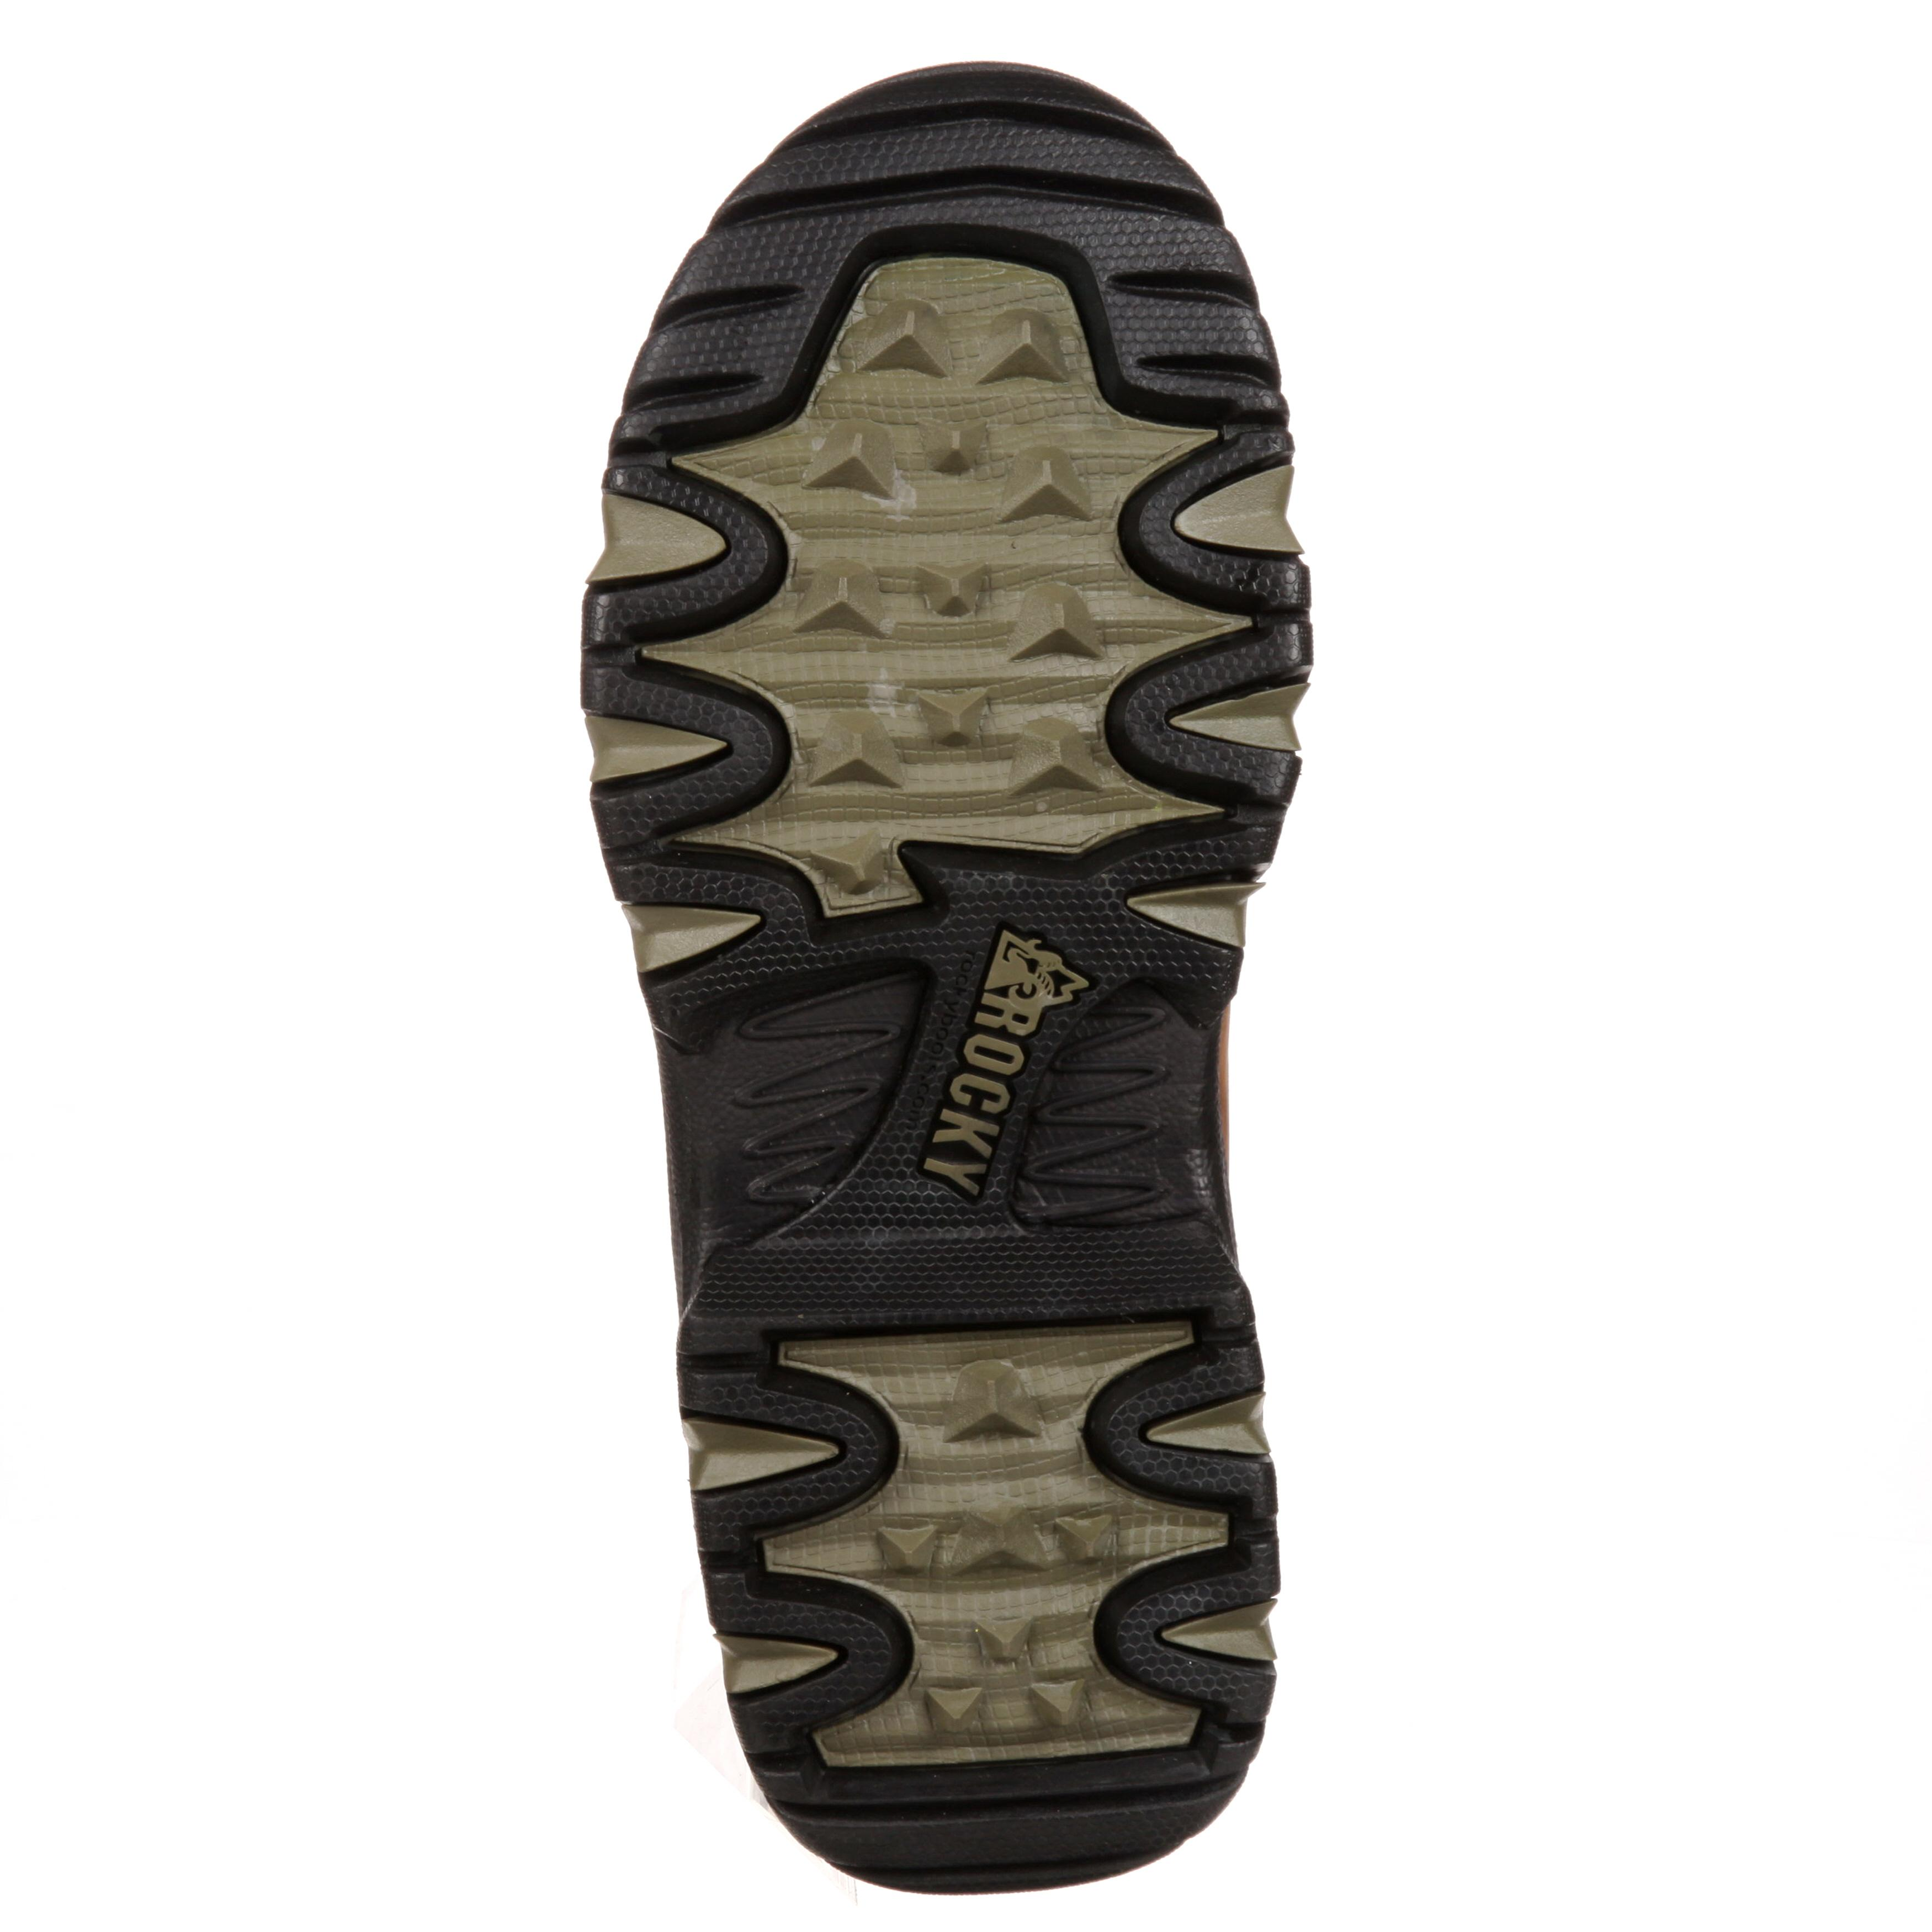 Rocky BigFoot Waterproof Insulated Outdoor Boot, #RKYS102